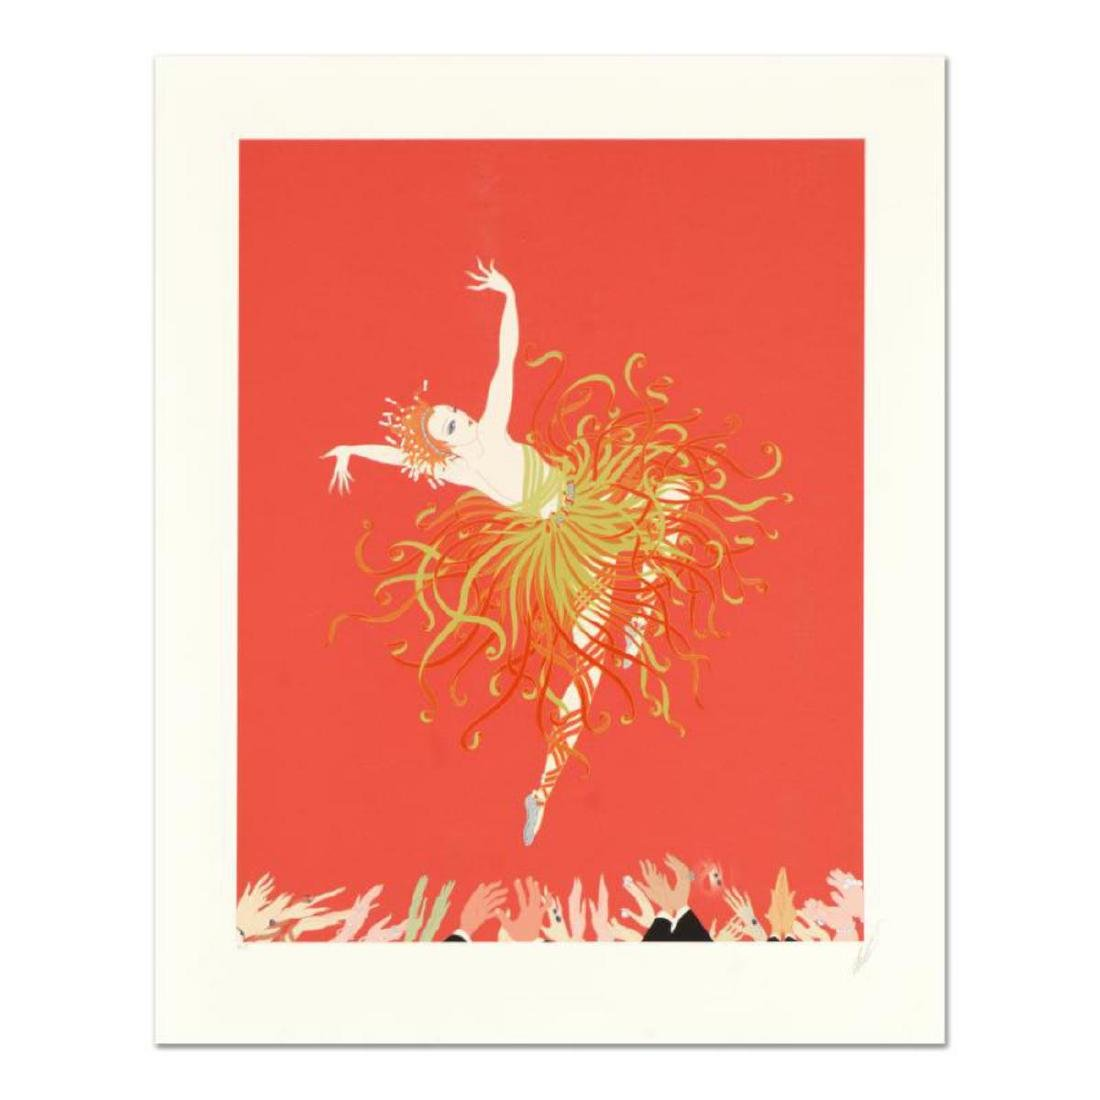 "Erte (1892-1990), ""Applause"" Limited Edition Serigraph,"